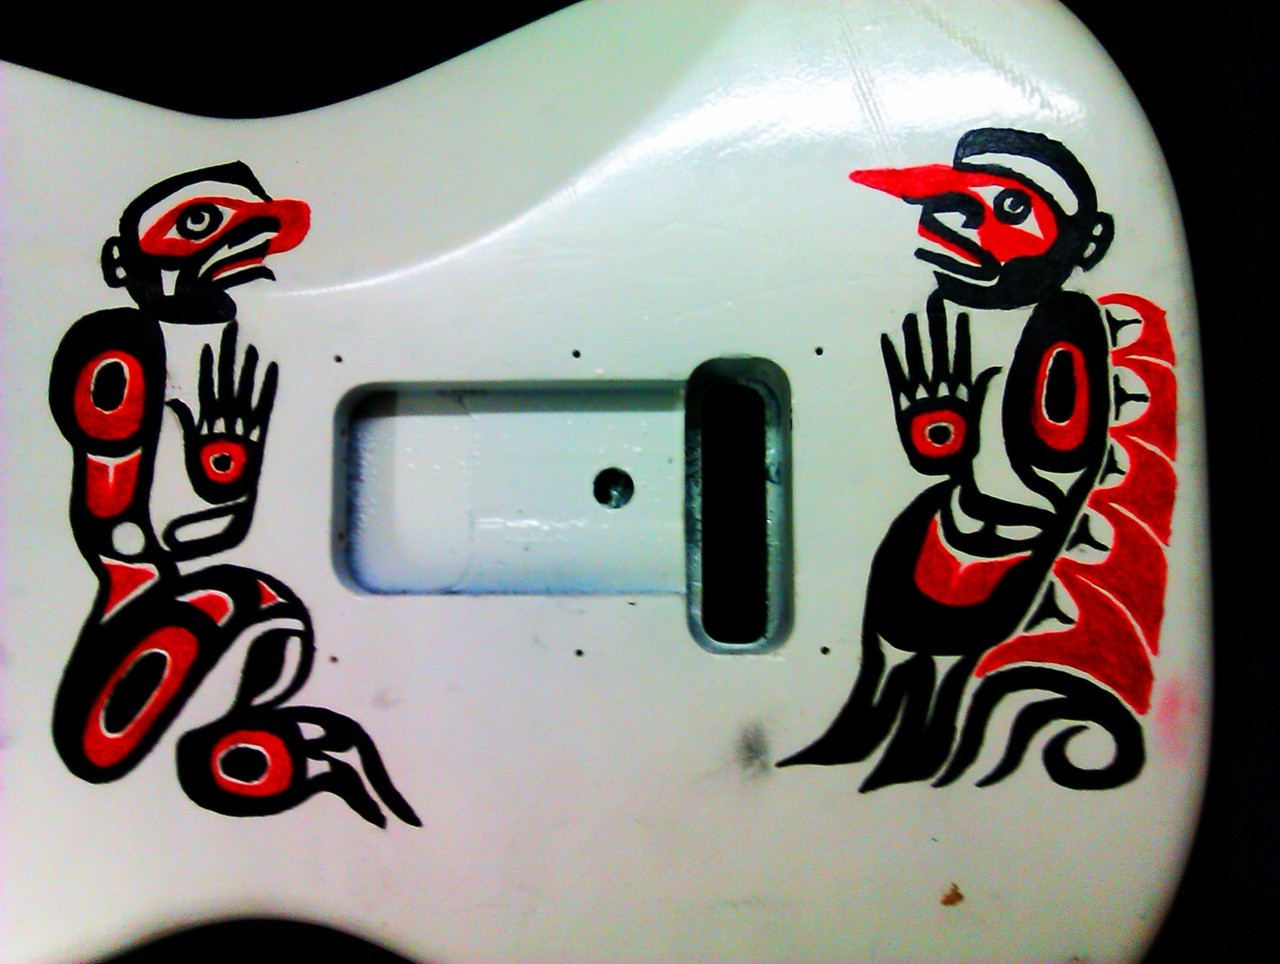 Here's a little treat, kinda. I started painting on the back of my guitar a few days ago, this is it so far, MORE TO COME!!!